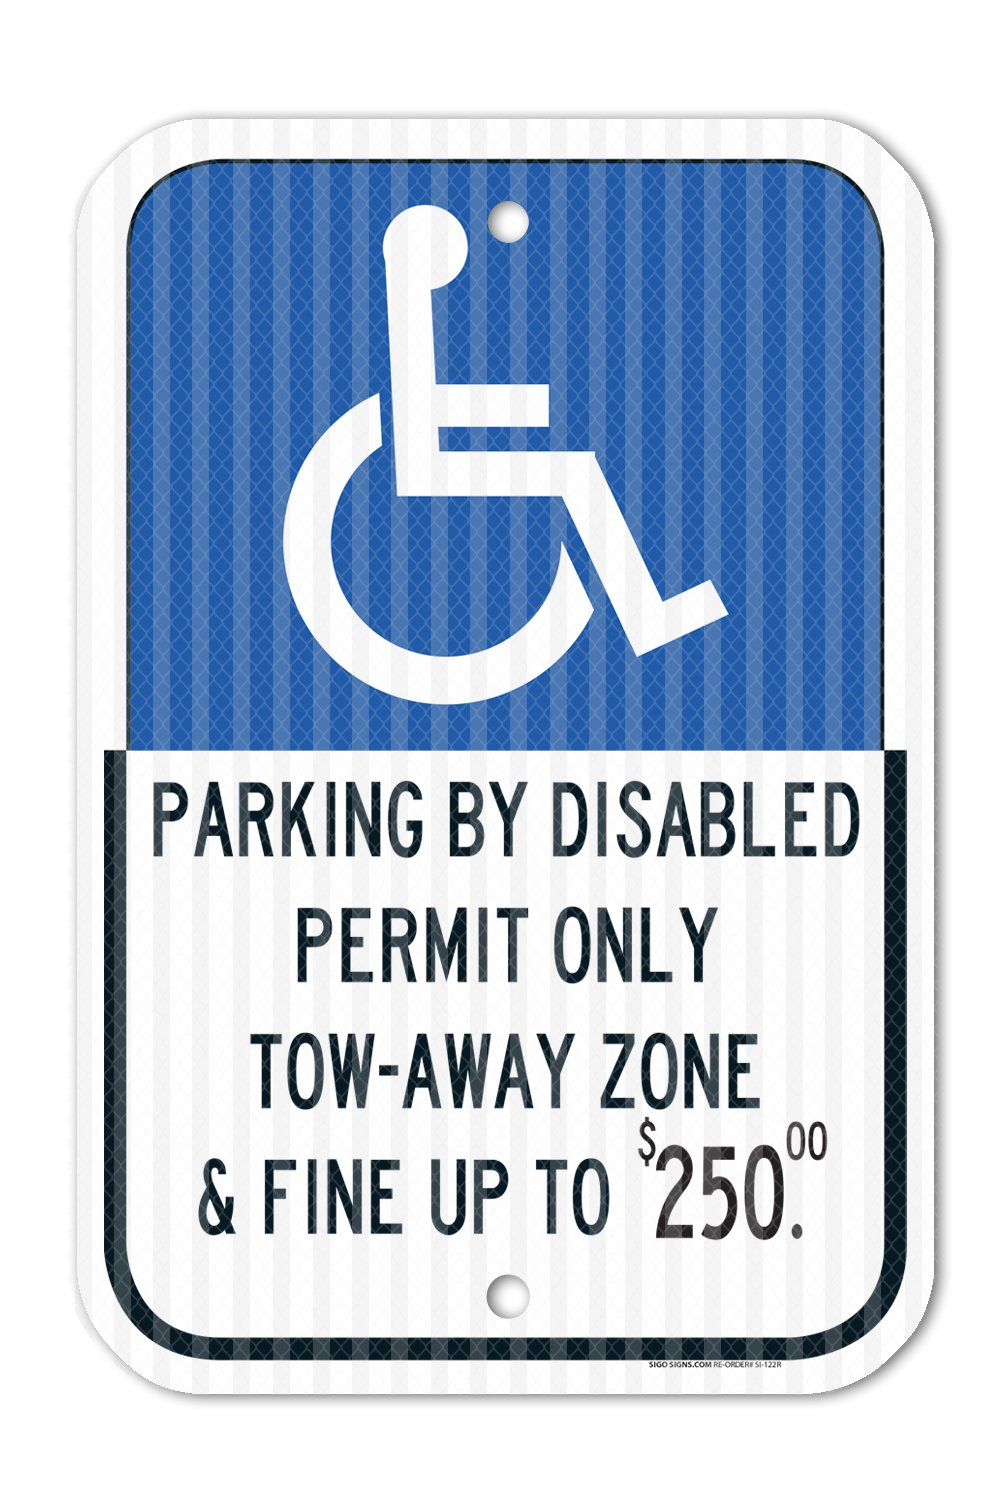 State of Florida Parking by Disabled Permit Only and Fined Sign - 12''x18'' Aluminum 3M EGP Prismatic Engineer Grade Reflective Handicap Parking Sign for Indoor Or Outdoor Use - by SIGO Signs by Sigo Signs